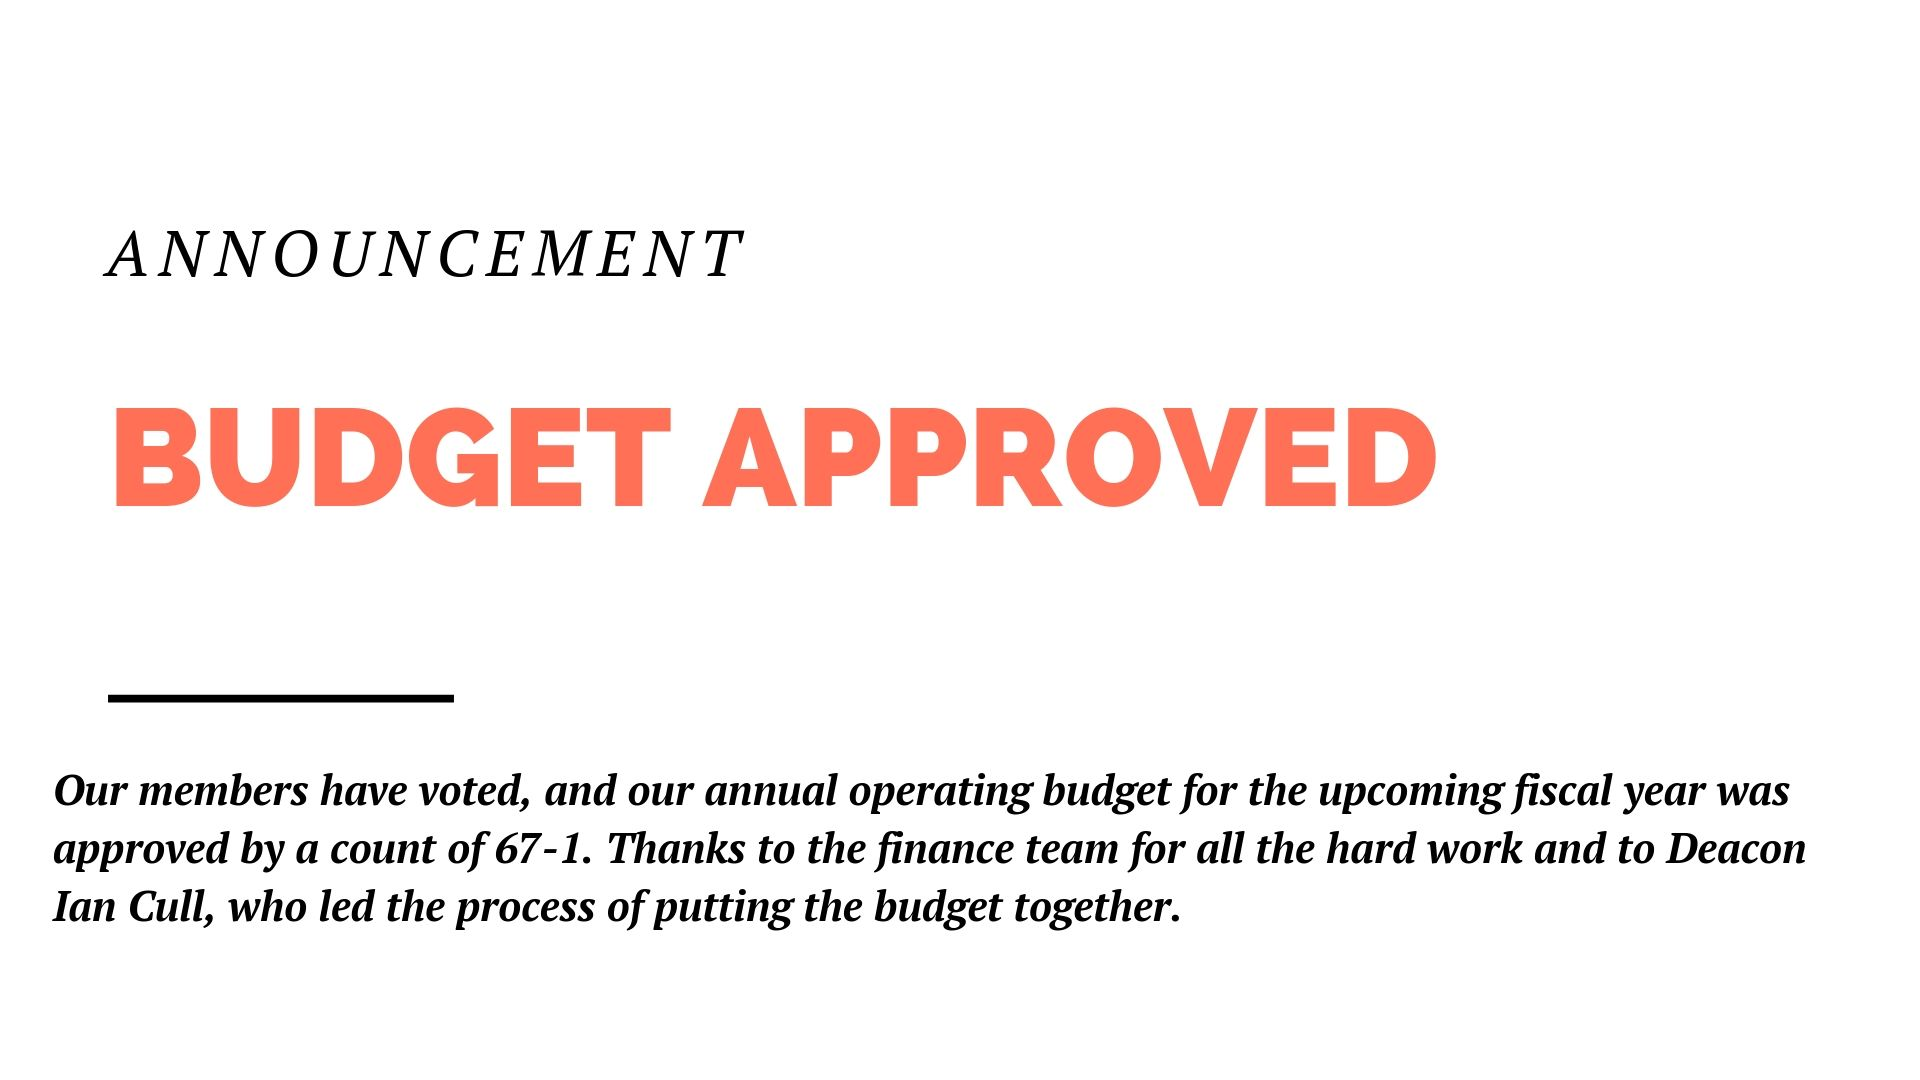 Our members have voted, and our annual operating budget for the upcoming fiscal year was approved by a count of 67-1. Thanks to the finance team for all the hard work and to Deacon Ian Cull, who led the process of putting the budget together.